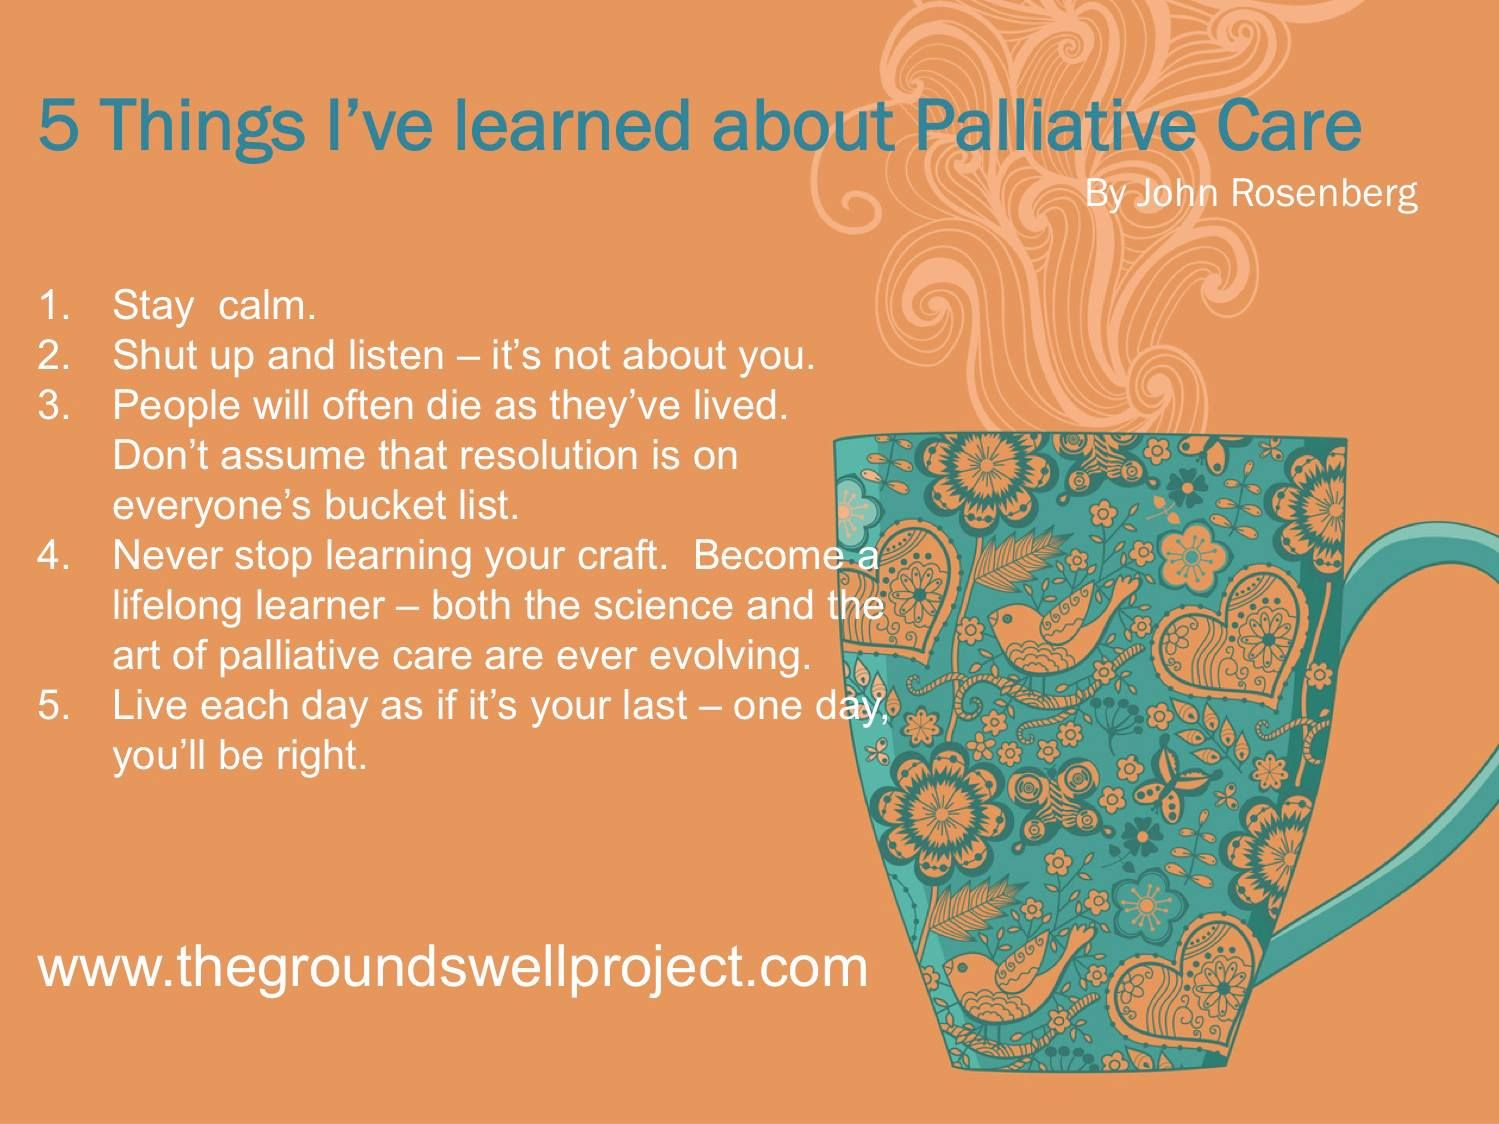 Hospice Nurse Quotes About Palliative Care  Palliative Care Is What I Do Pinterest